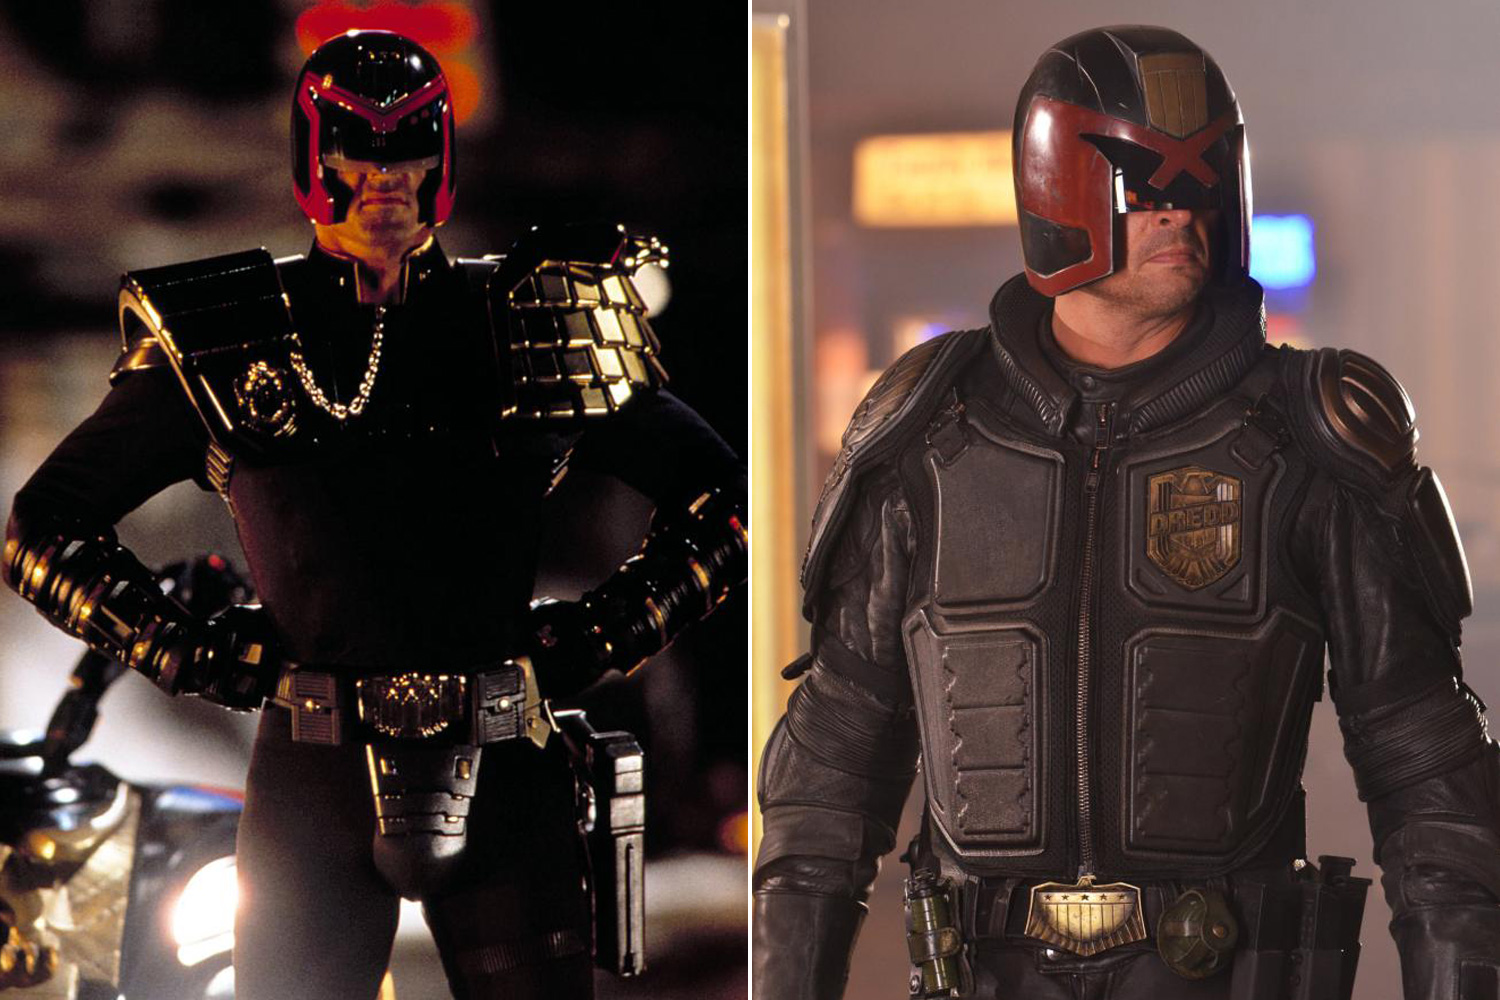 Sylvester Stallone's original 1995 take on Judge Dredd, the iconic British comic character, was lambasted and earned Stallone a Golden Raspberry for Worst Actor. The 2012 reboot, <i>Dredd</i>, starring Karl Urban as the titular character, didn't fare well at the box office, but was better received critically.